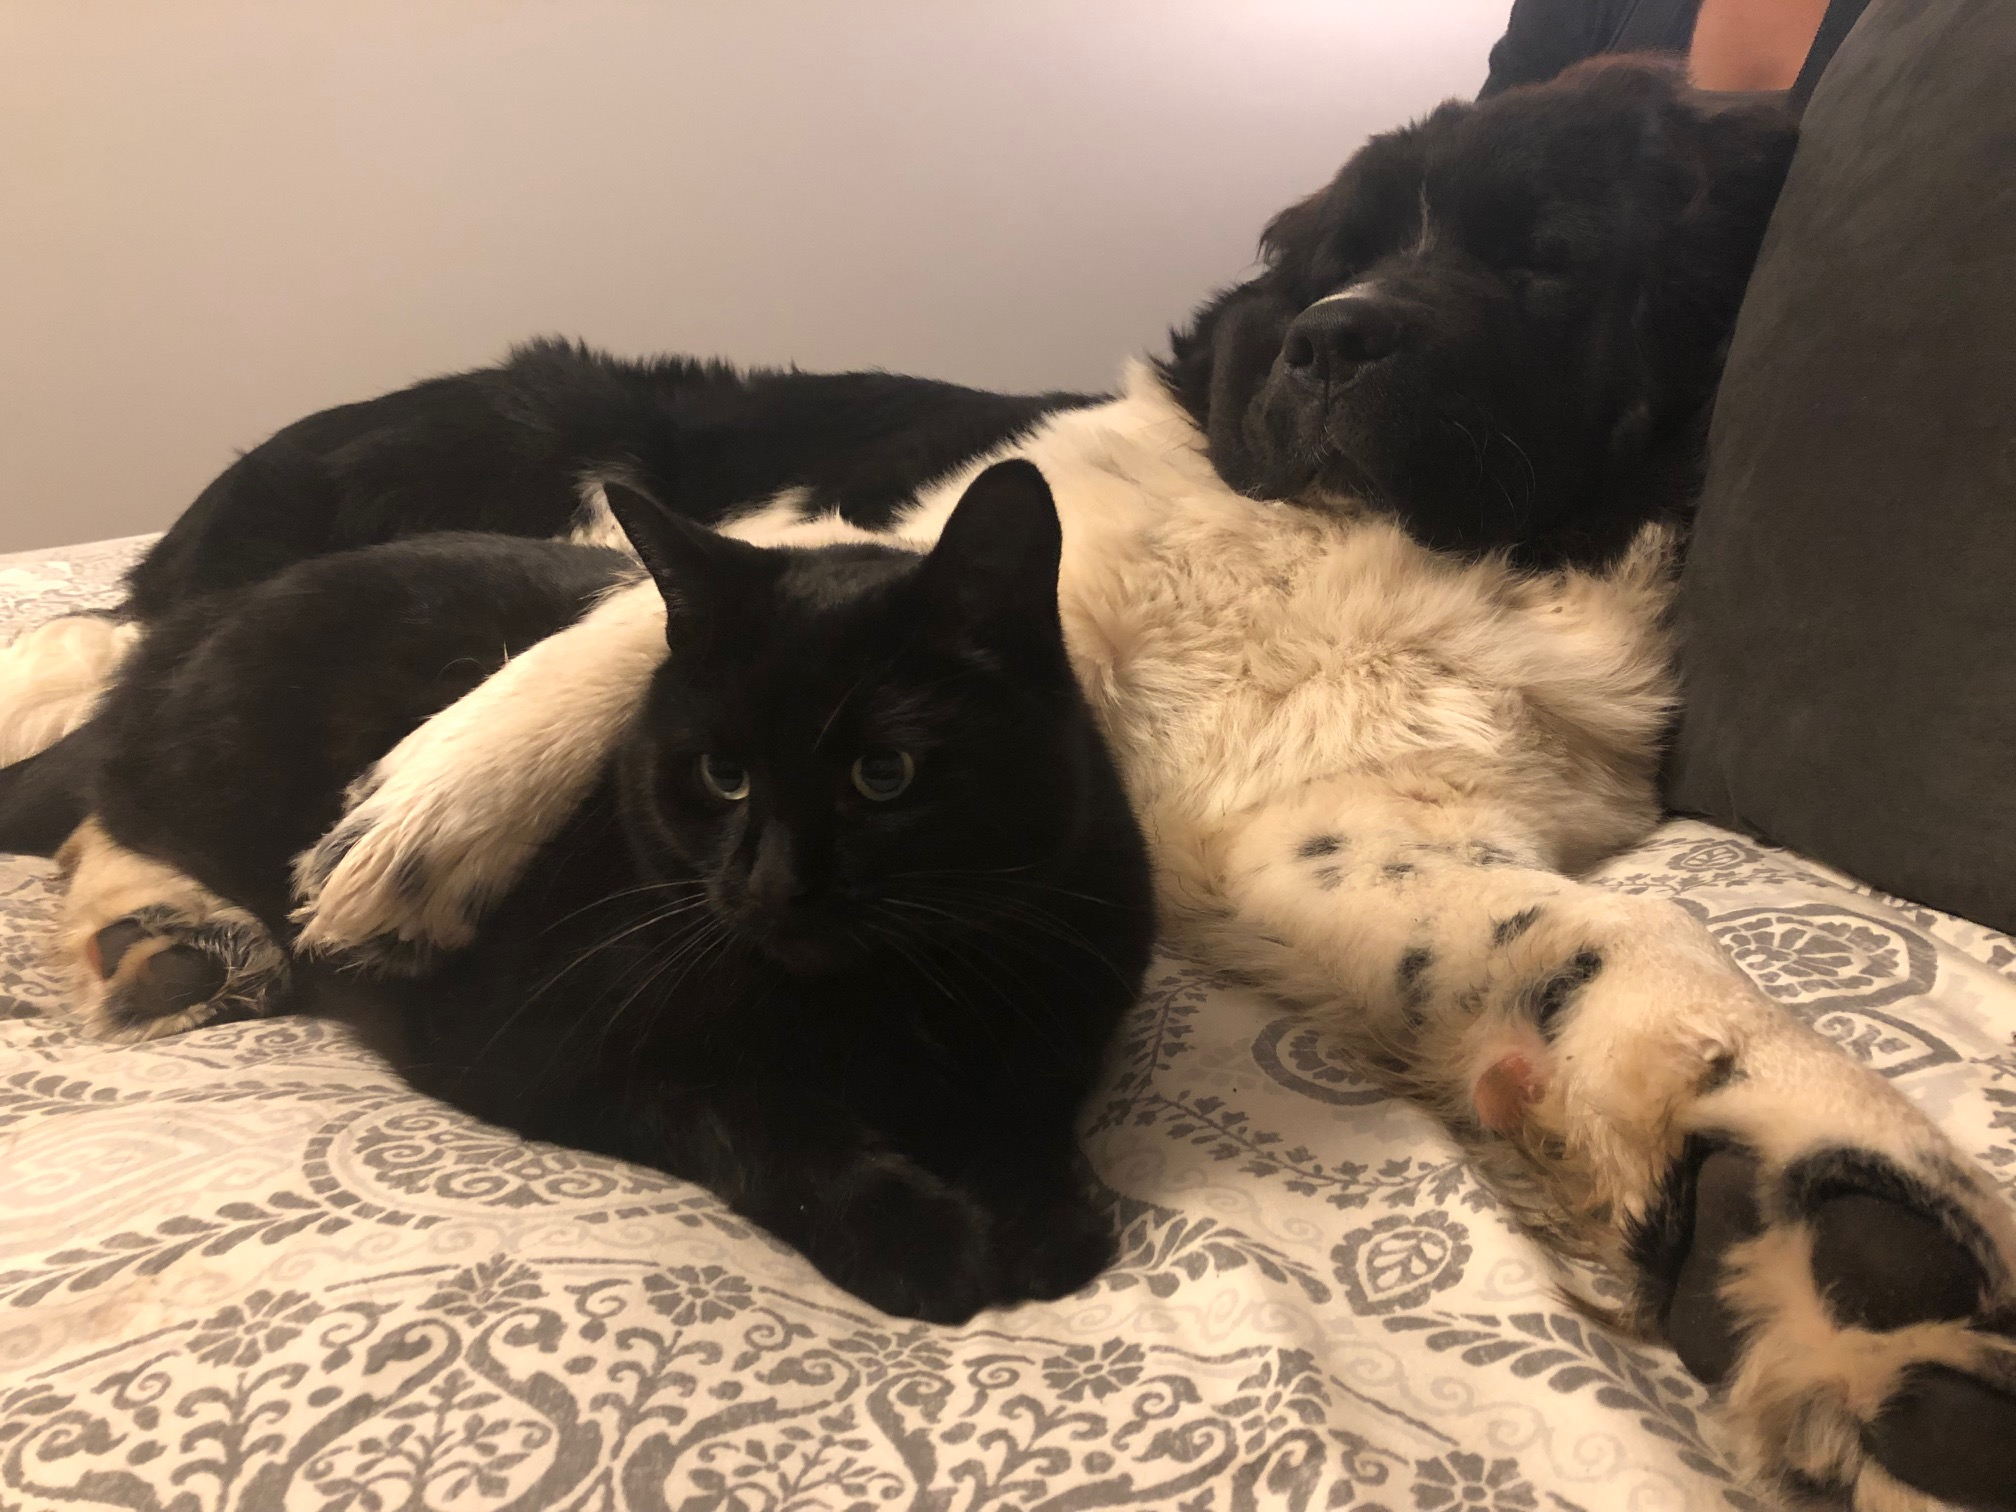 Murphy hanging out with his feline friend